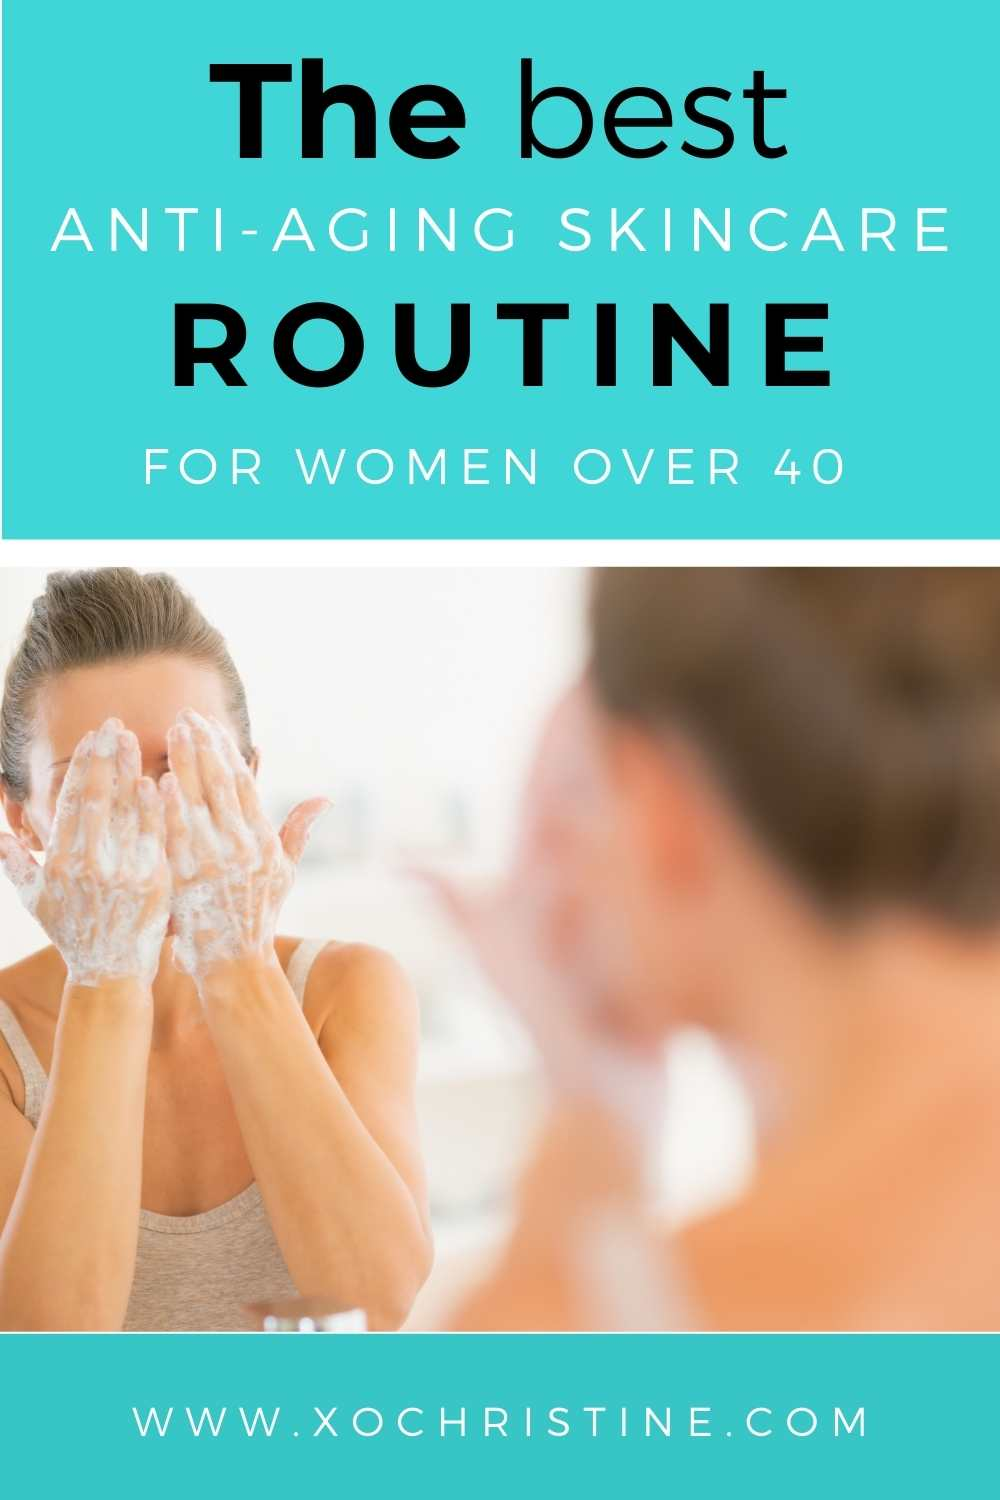 nighttime skincare routine for women over 40